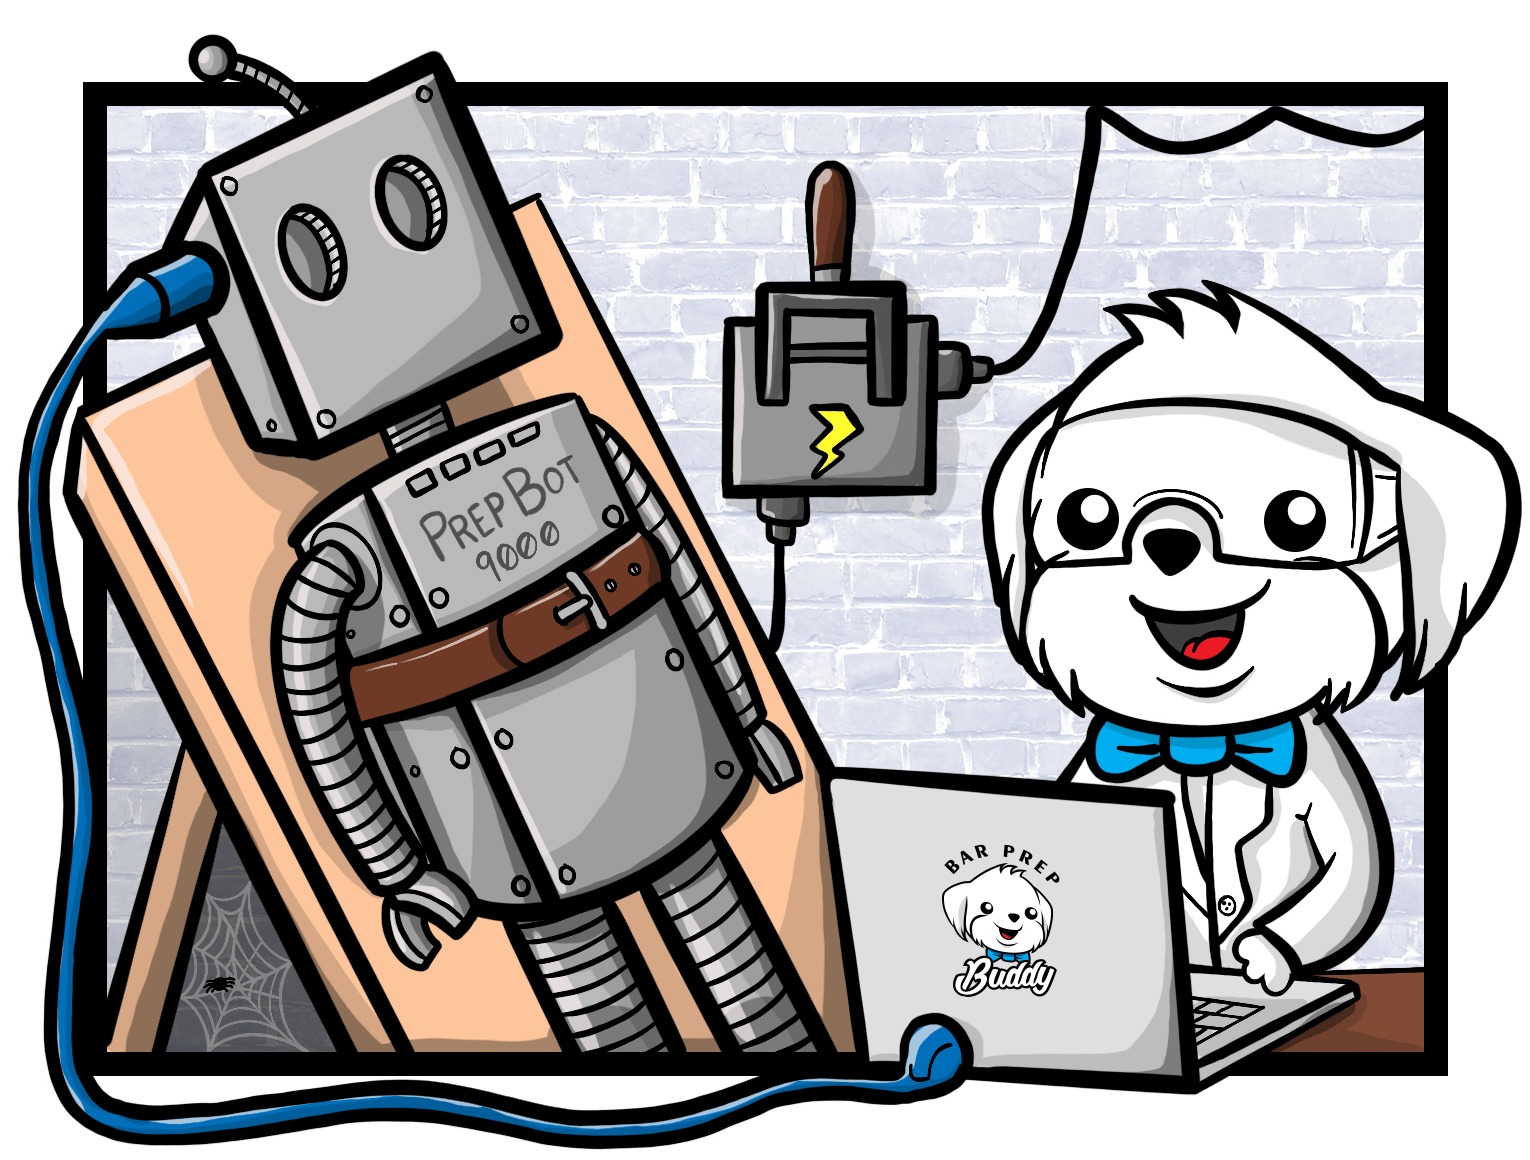 Illustration of the mascot loading up a robot with AI knowledge.